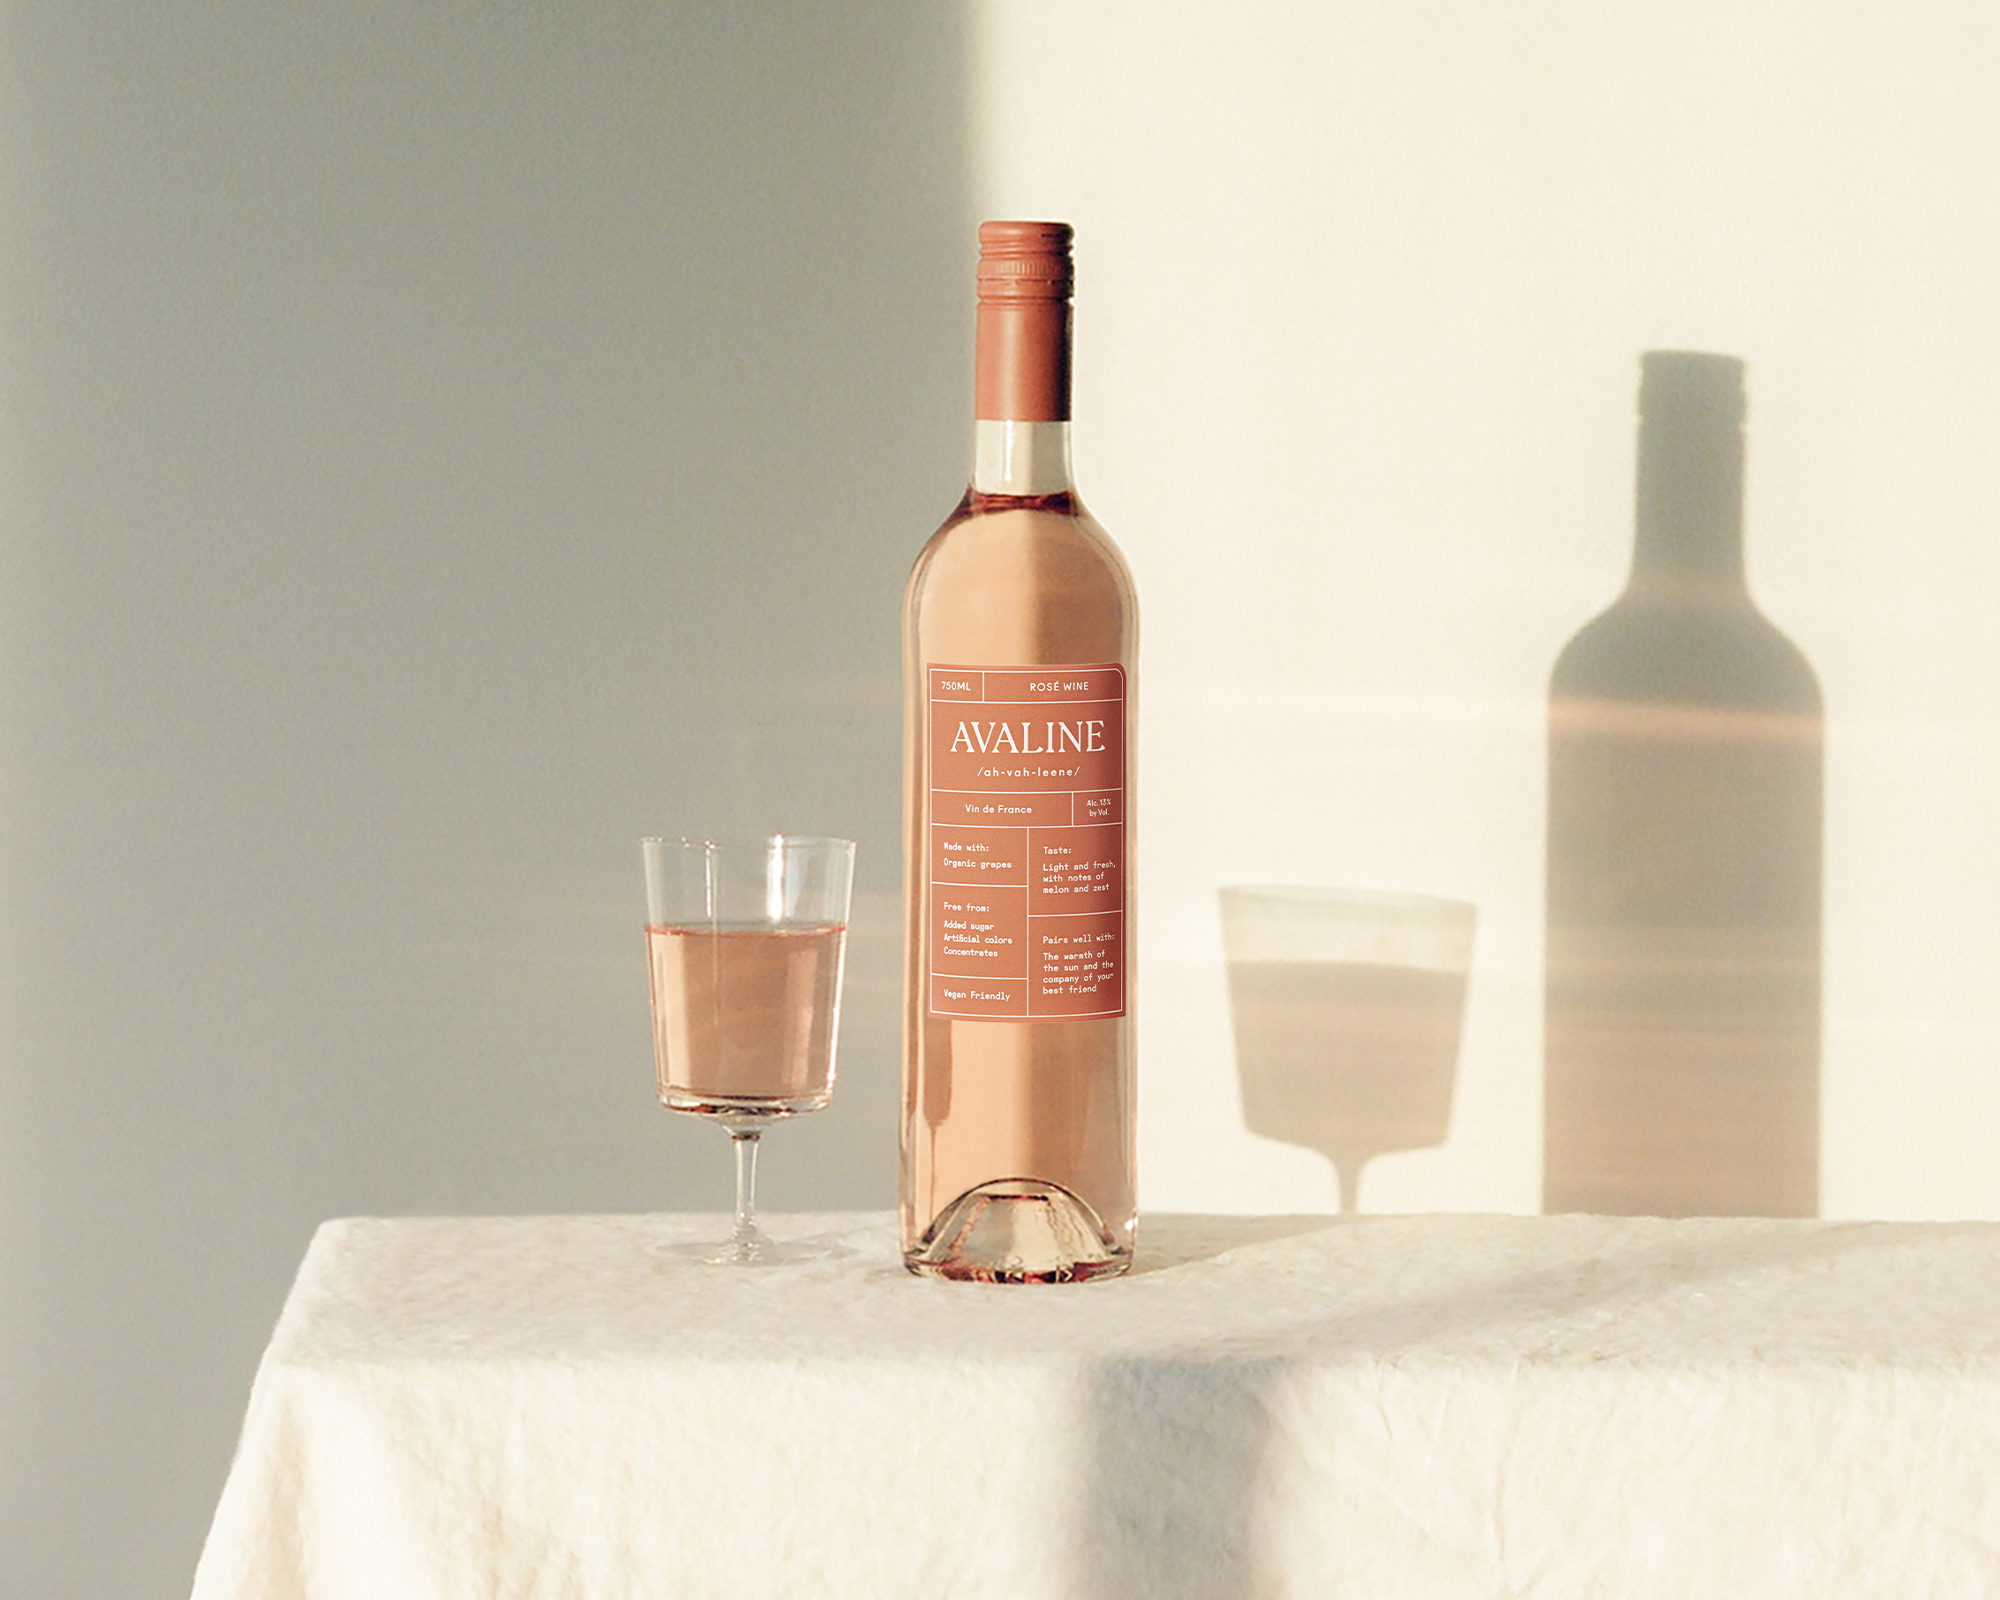 gifts-for-foodies-avaline-rose-wine